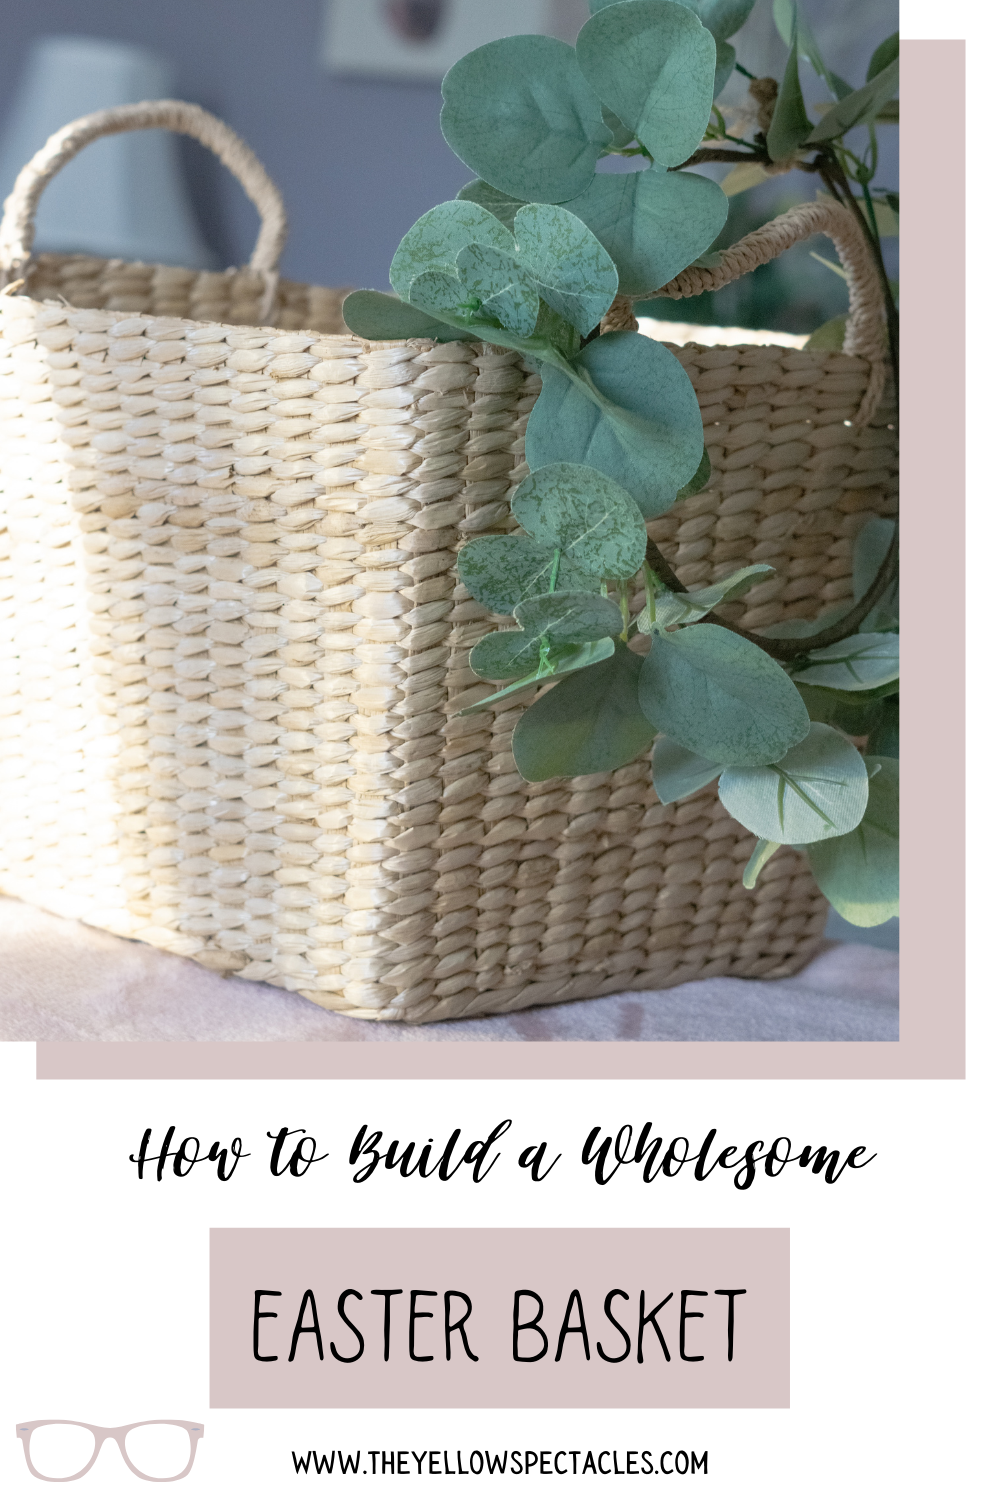 How to Build a Wholesome Easter Basket